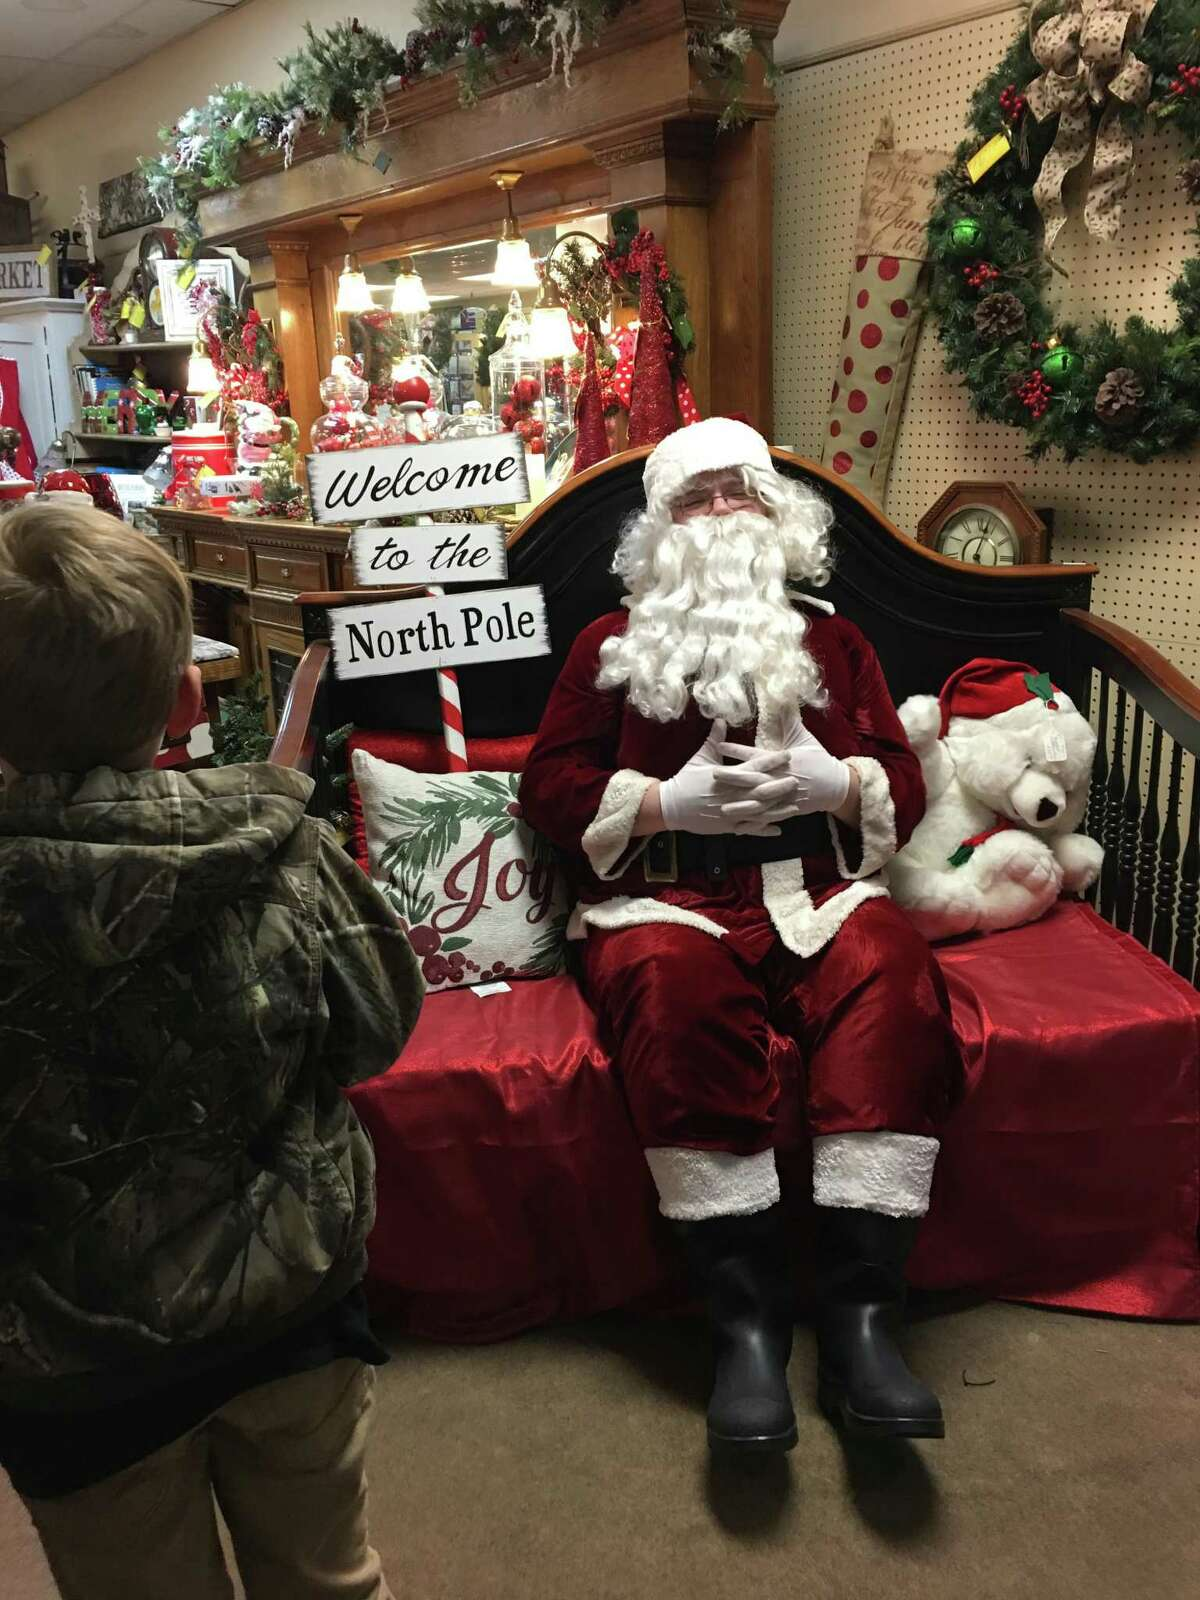 On Sunday, participate in the Annual Sneak Peek at Mimi's on Main for special sales and photos with Santa from noon until 4 p.m. Photos are free to take with your phone.